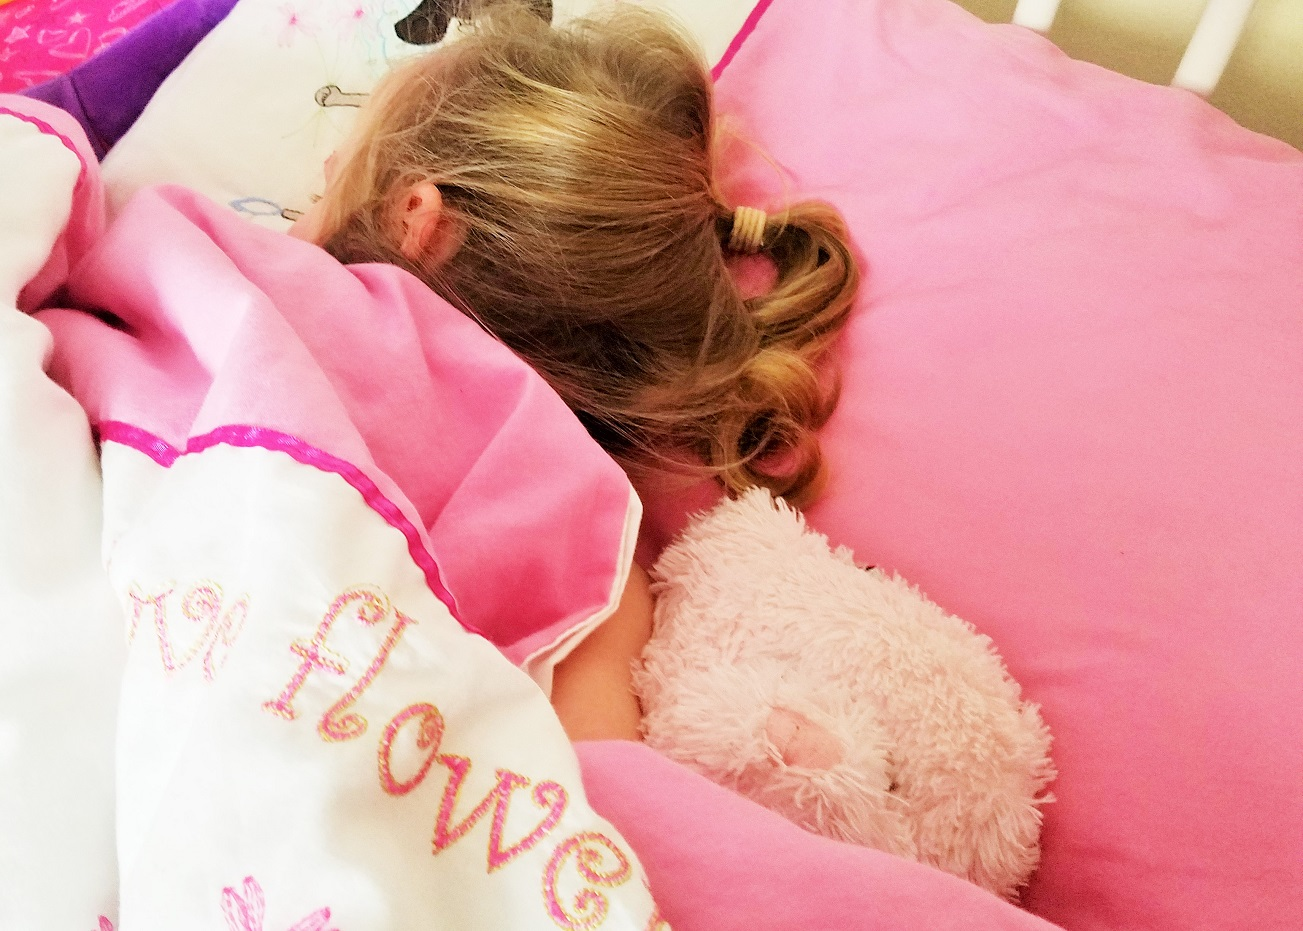 Stuffed toys child asleep in bed with teddy